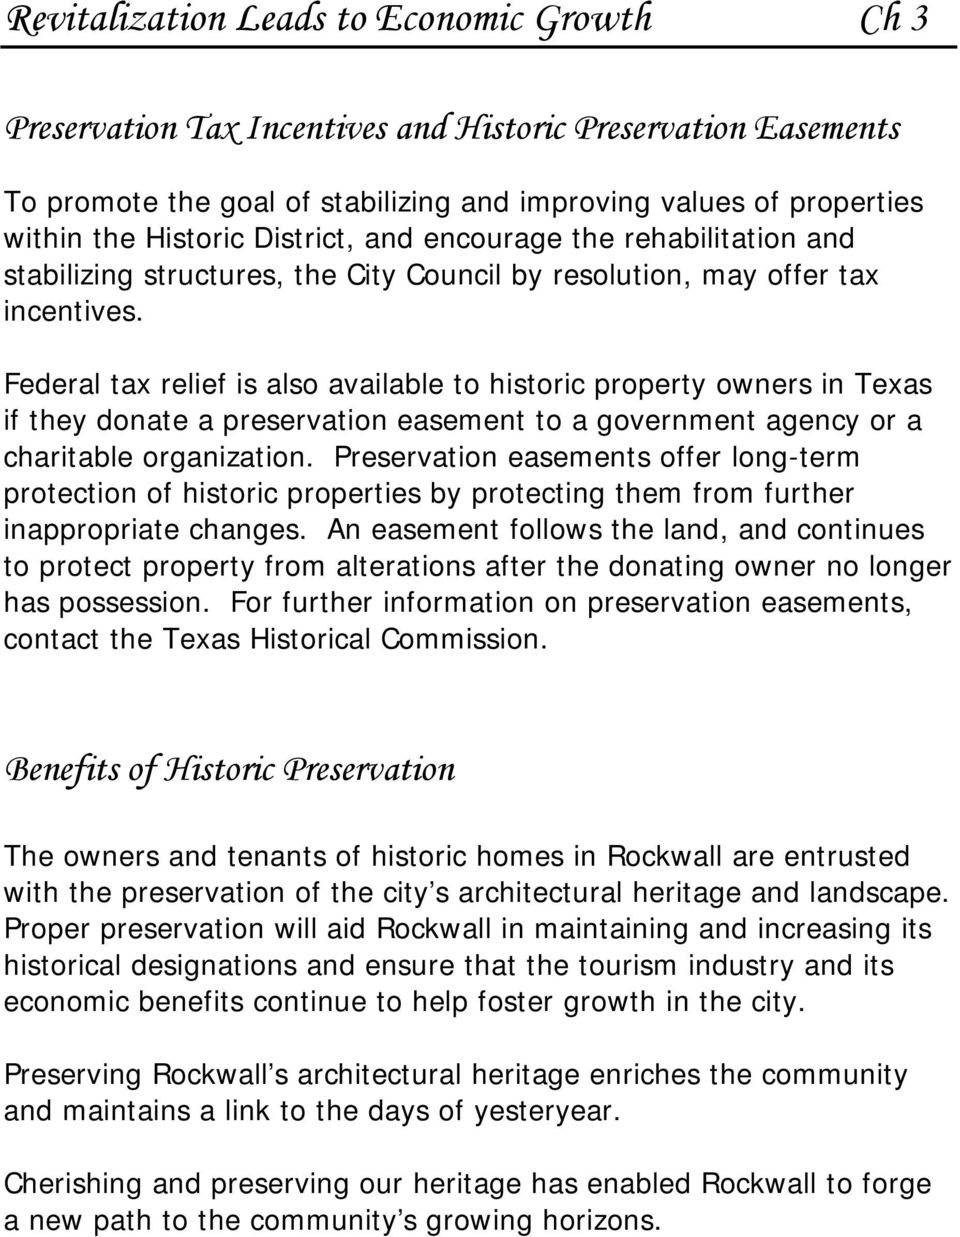 Federal tax relief is also available to historic property owners in Texas if they donate a preservation easement to a government agency or a charitable organization.